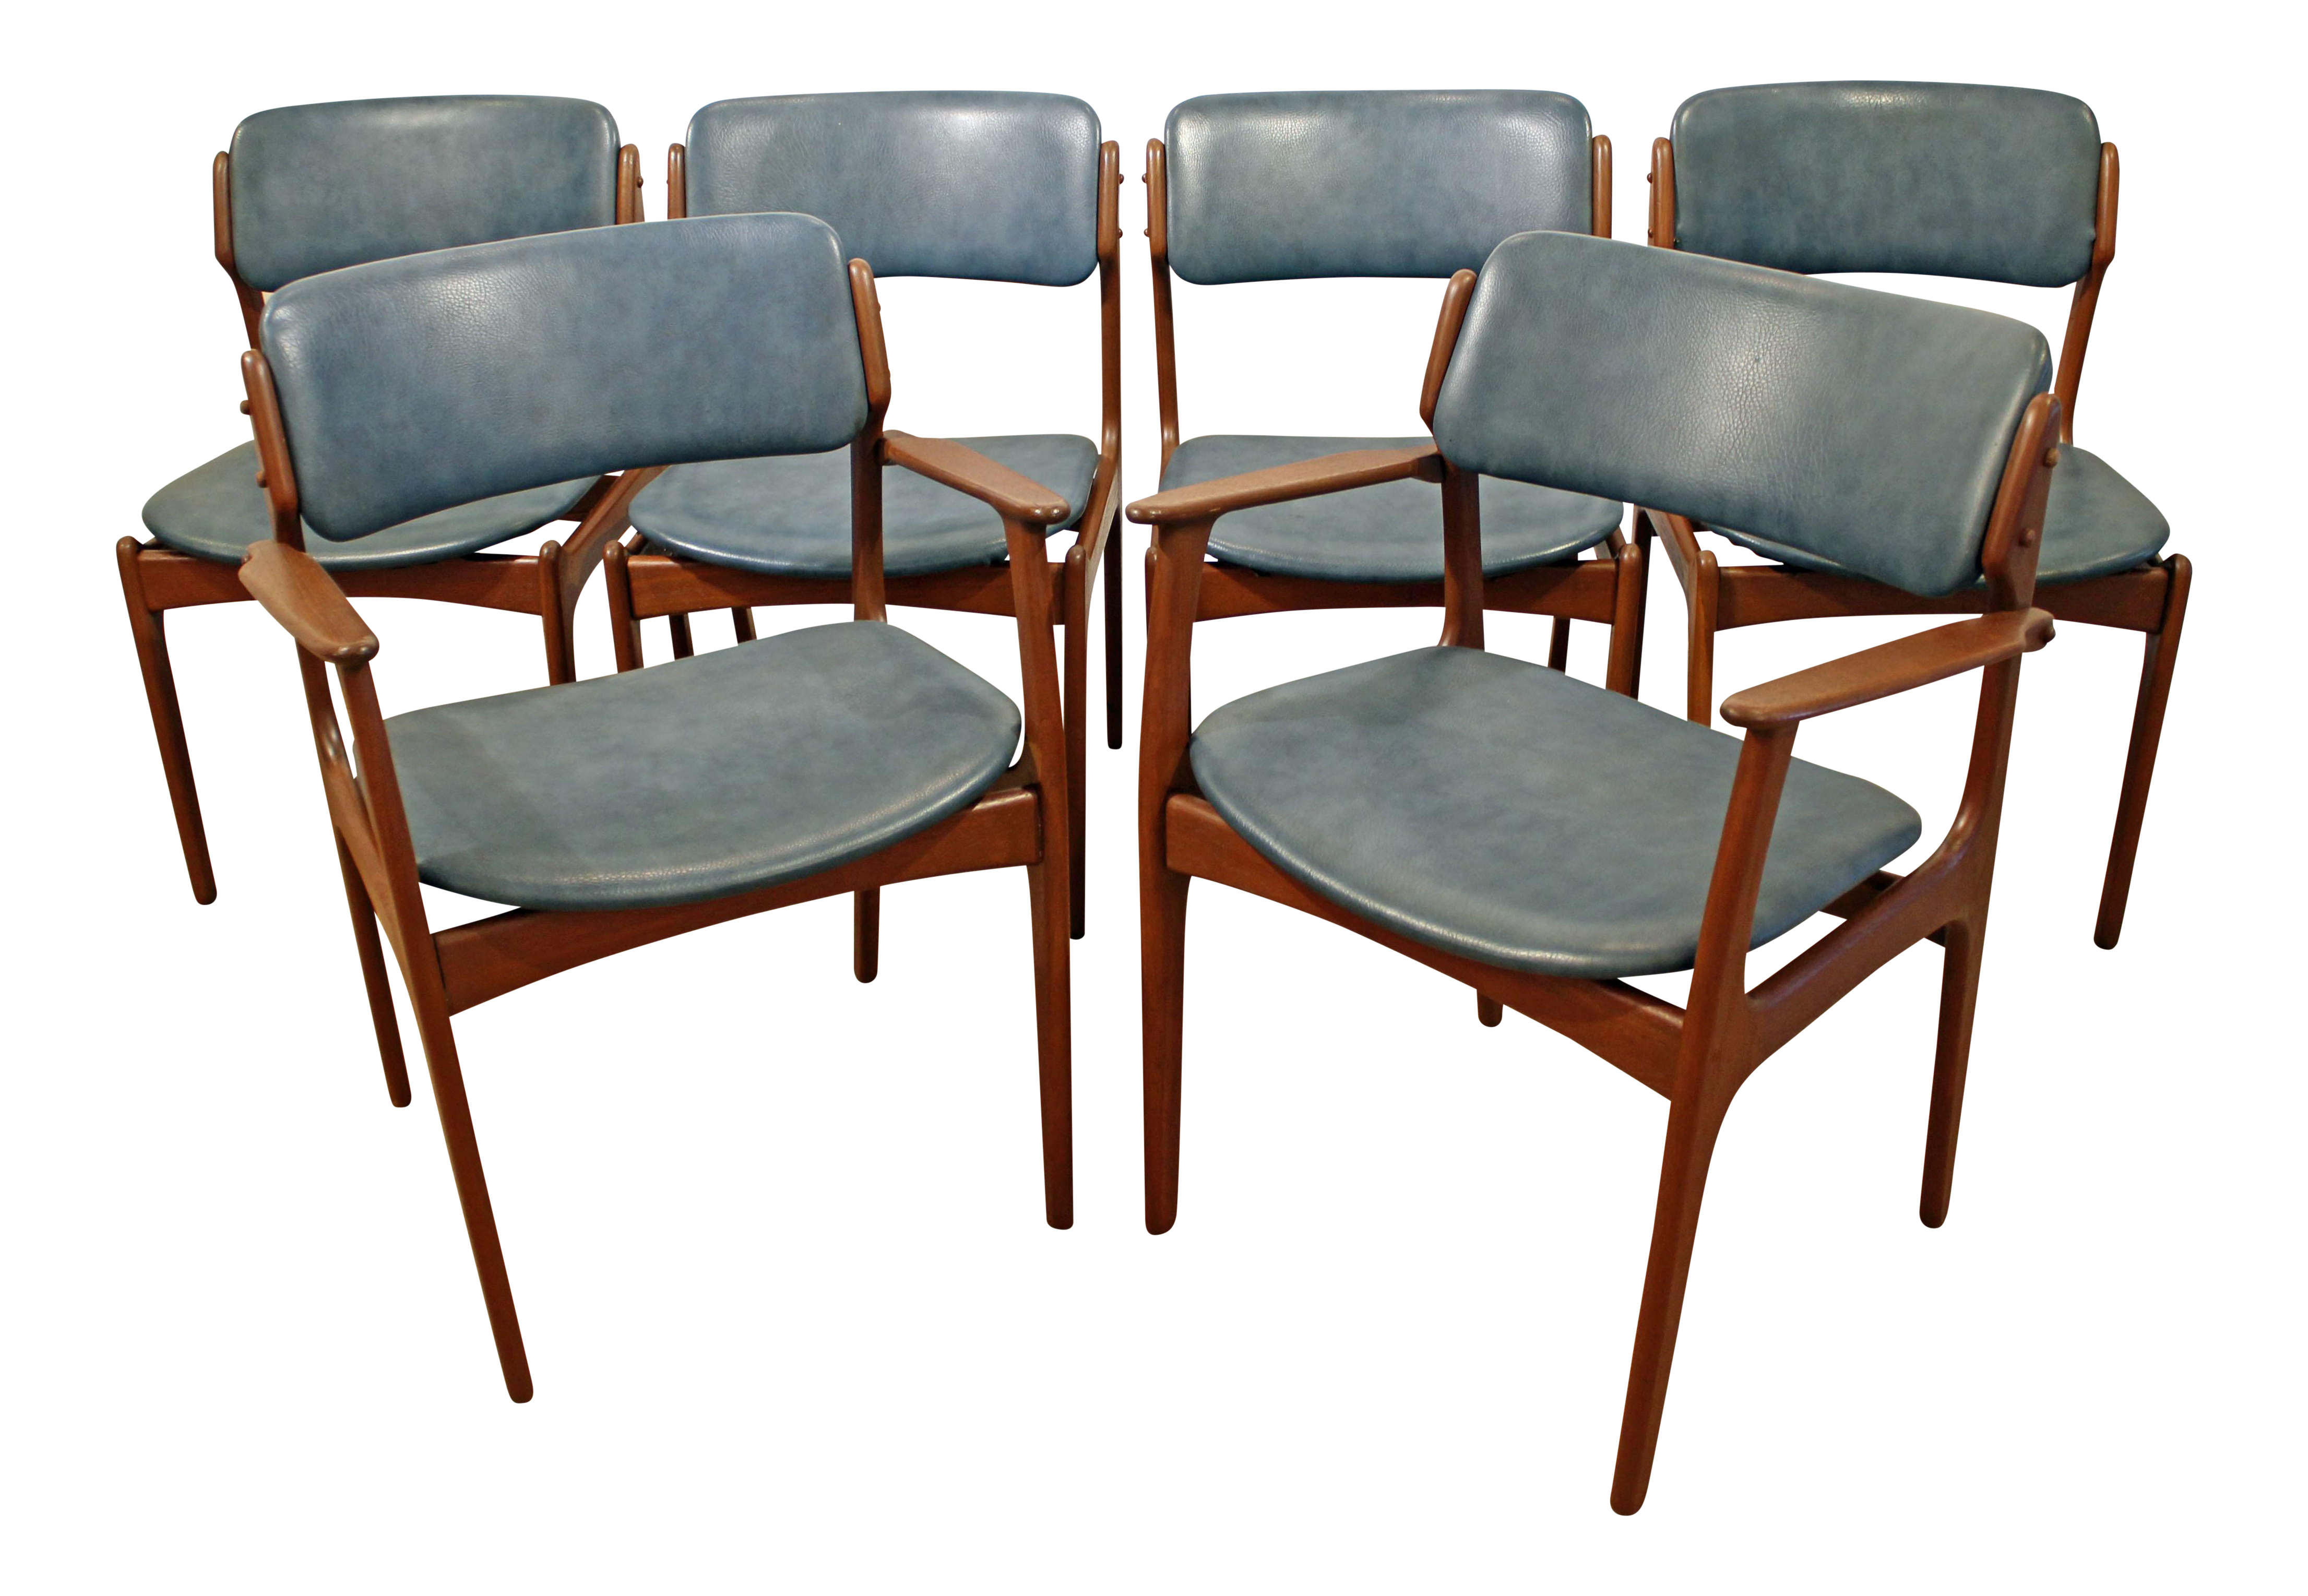 Gently Used Vintage Danish Modern Furniture for Sale at Chairish